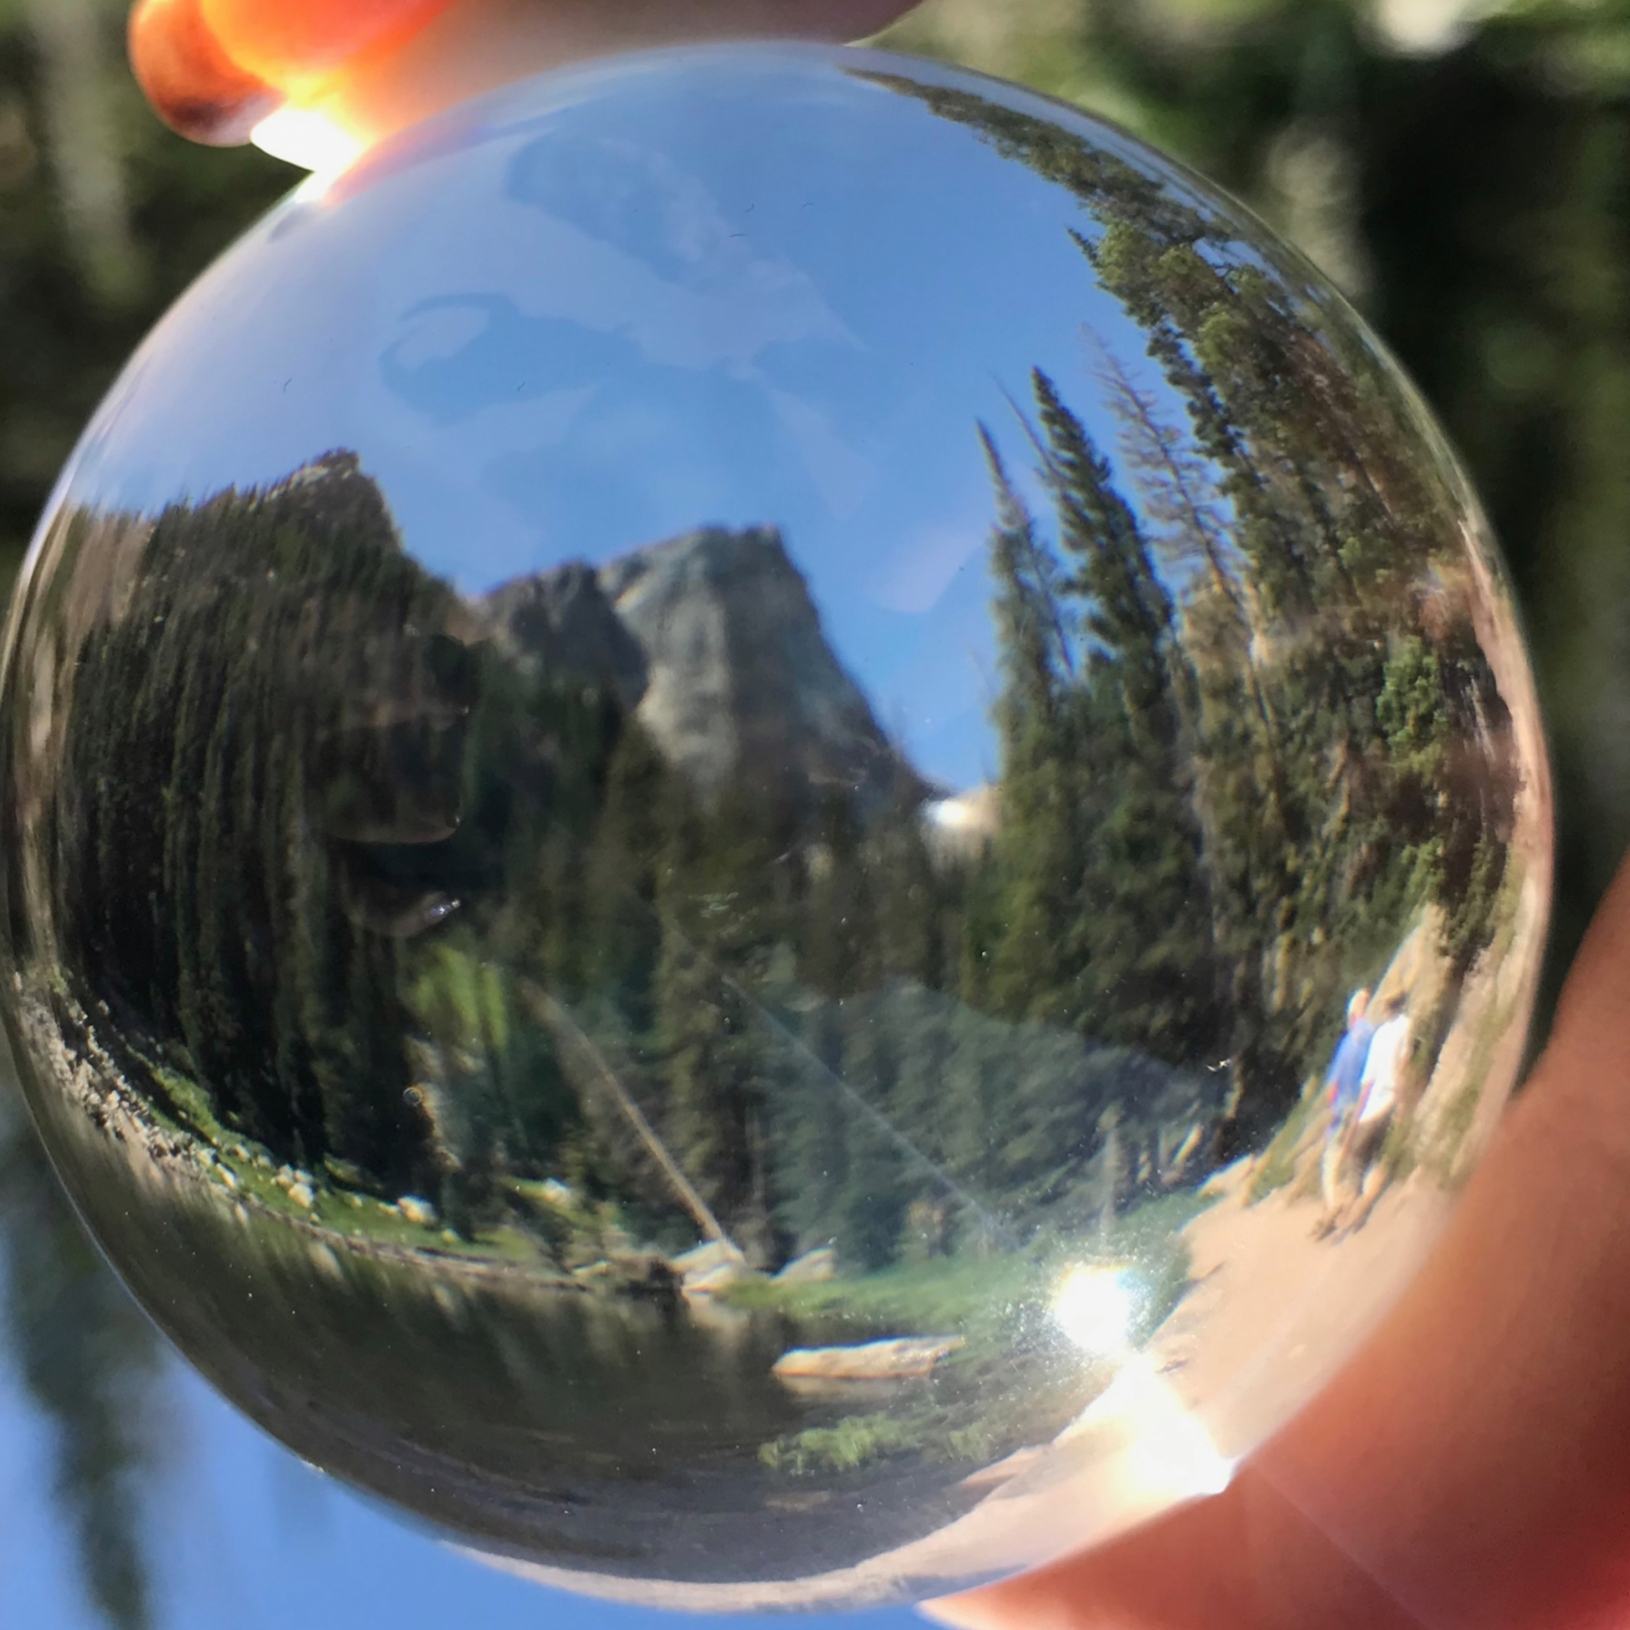 Dream Lake seen through a crystal ball as hikers make their way along the trail